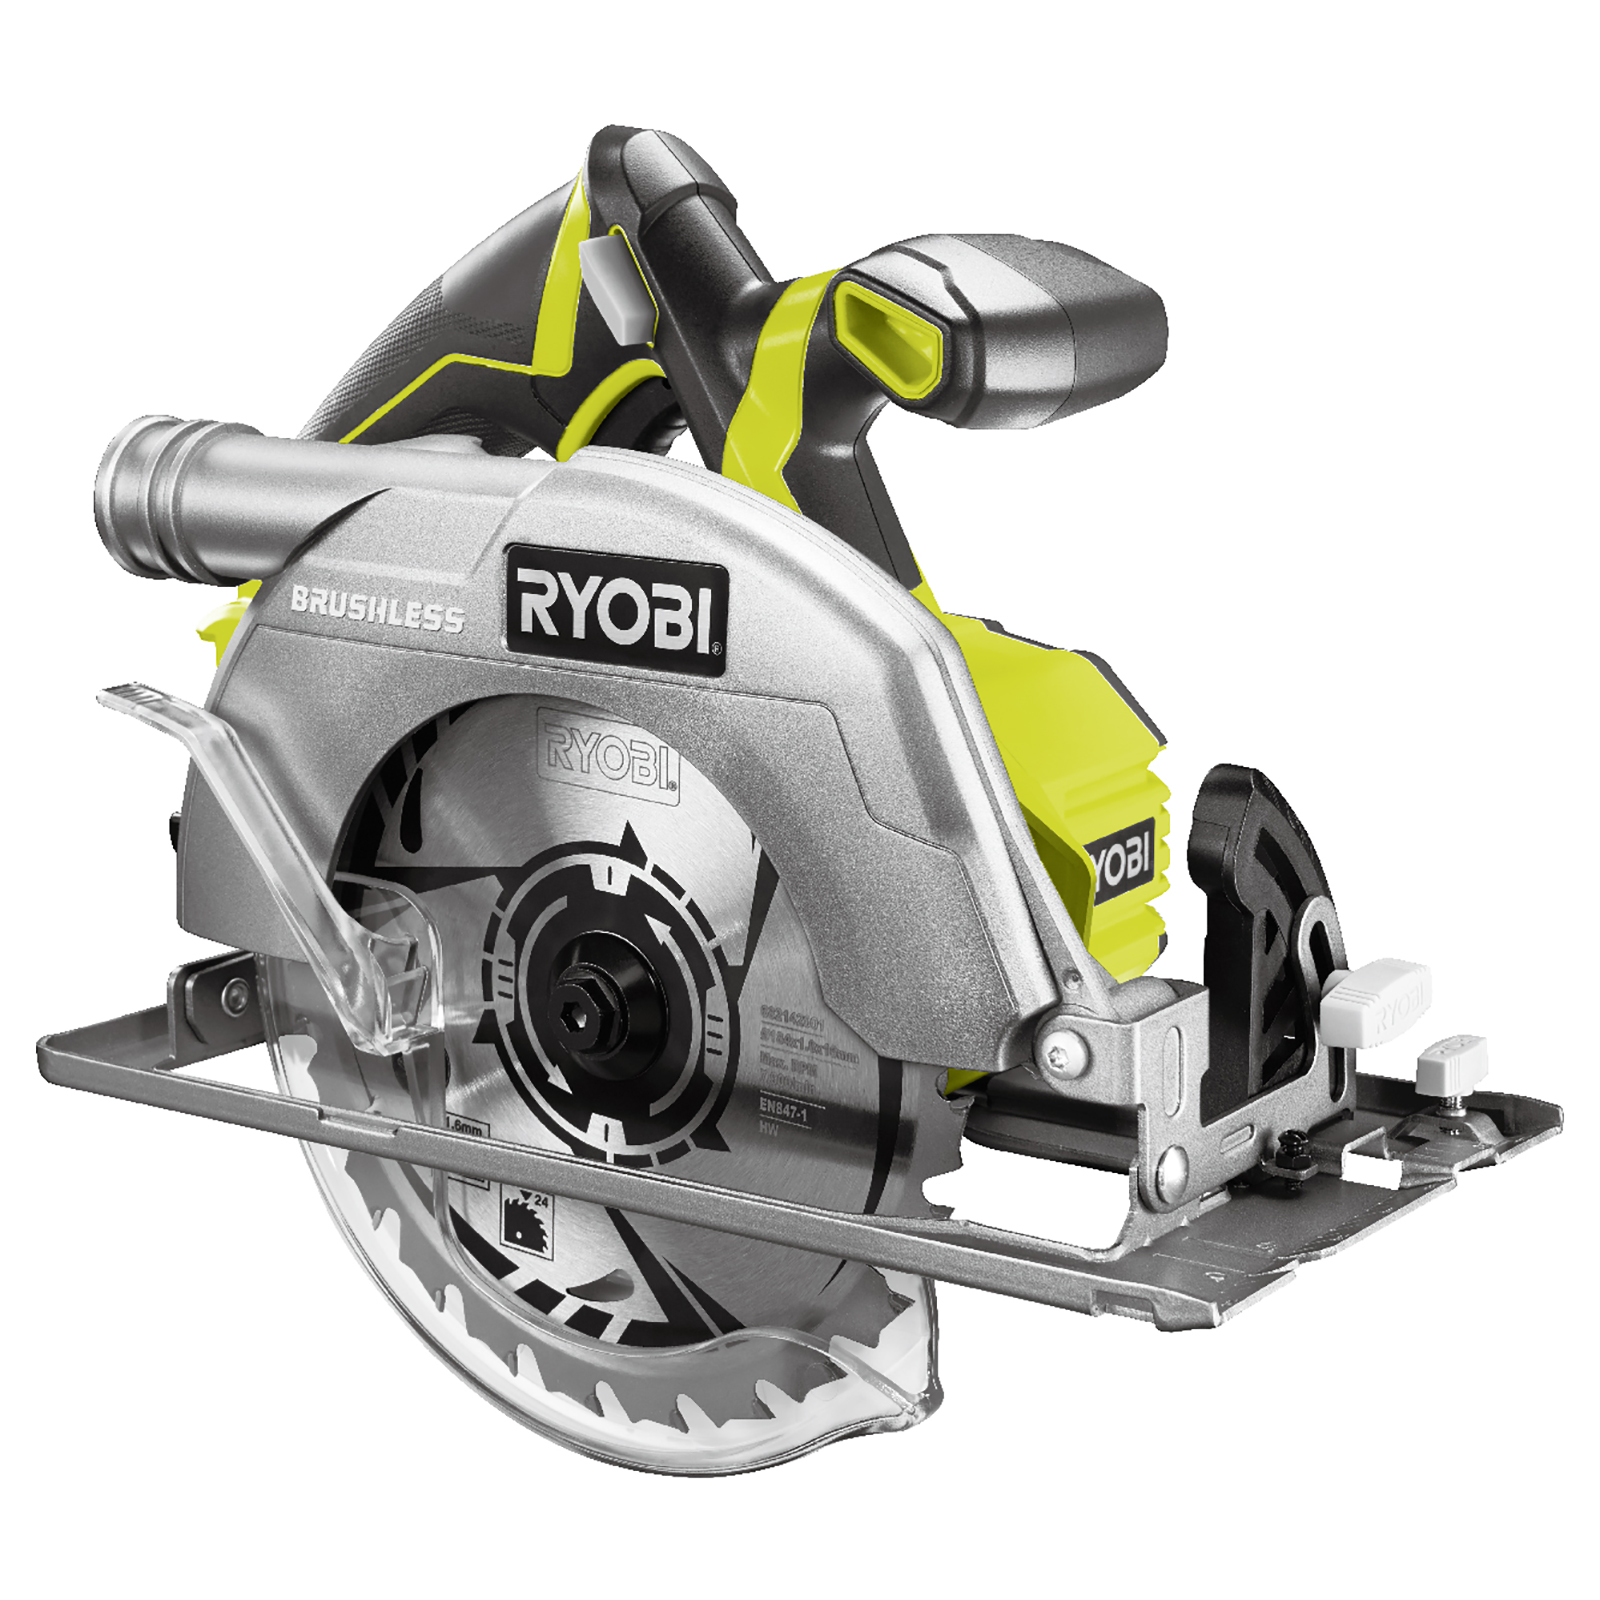 Ryobi 18v 7 14 inch brushless circular saw spotted tool craze last week we learned about a new ryobi 18v brushless angle grinder which is impressive news from ryobi they are in a relentless mission as are other keyboard keysfo Image collections